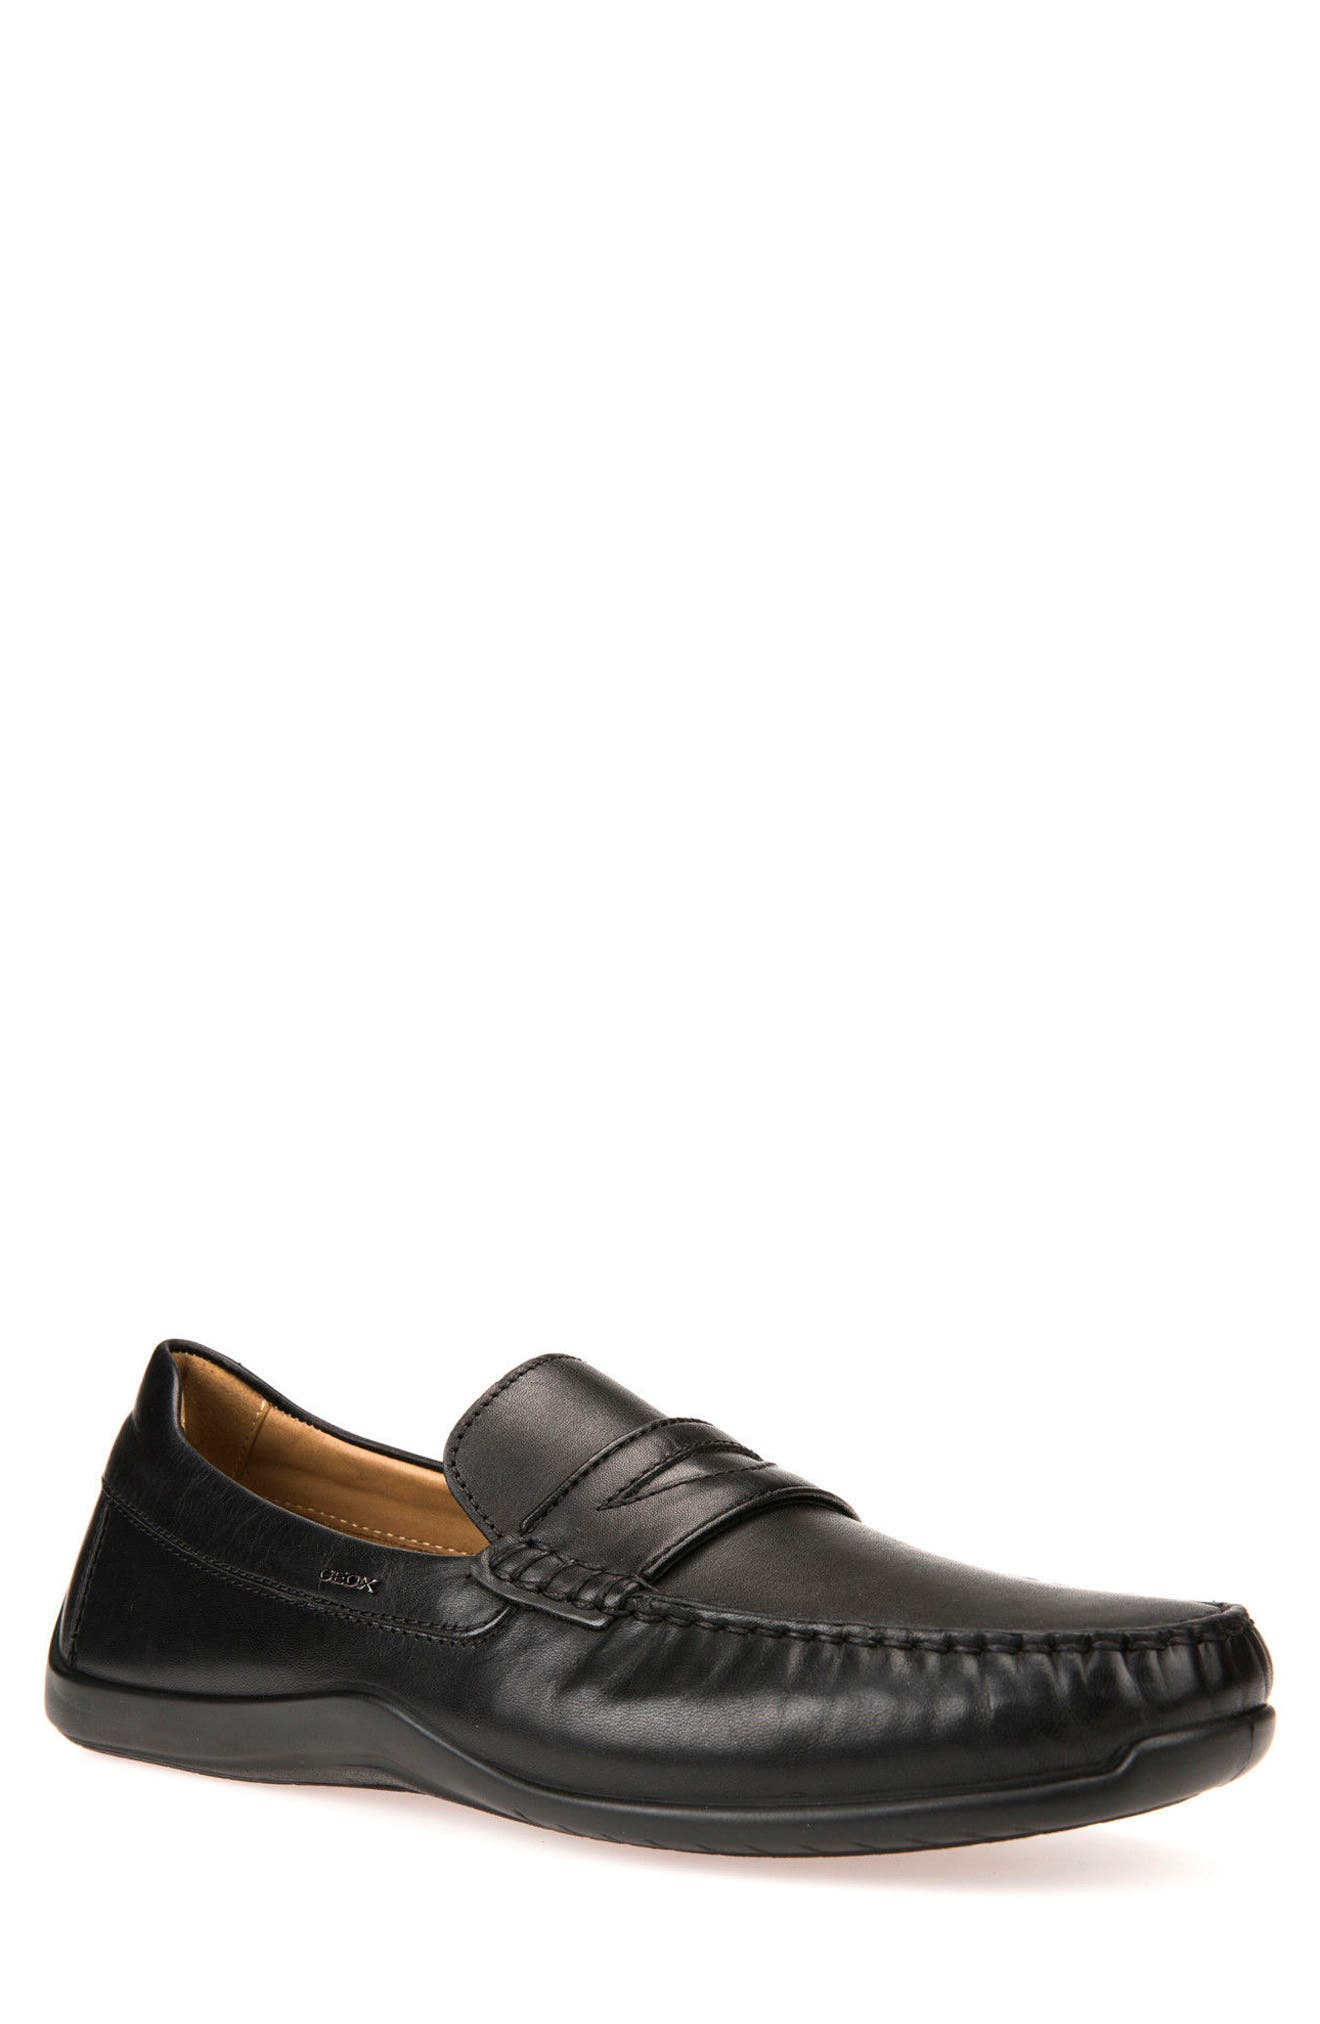 Main Image - Geox Xense Penny Loafer (Men)